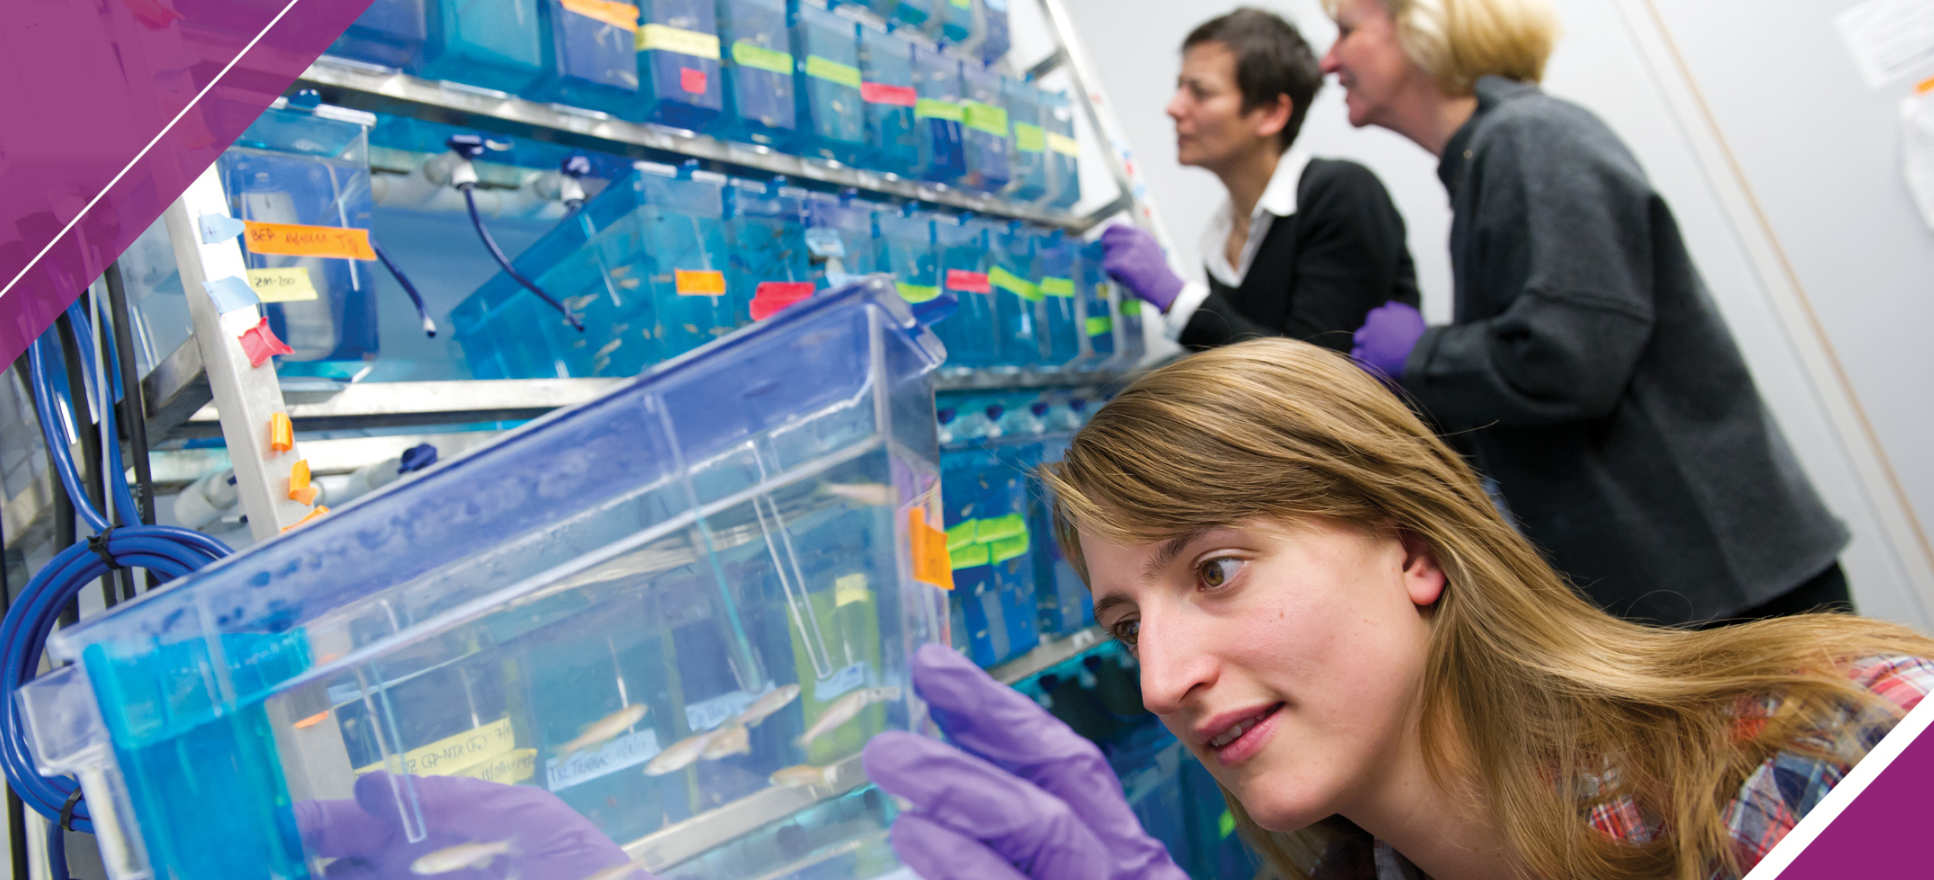 Researchers observing zebrafish